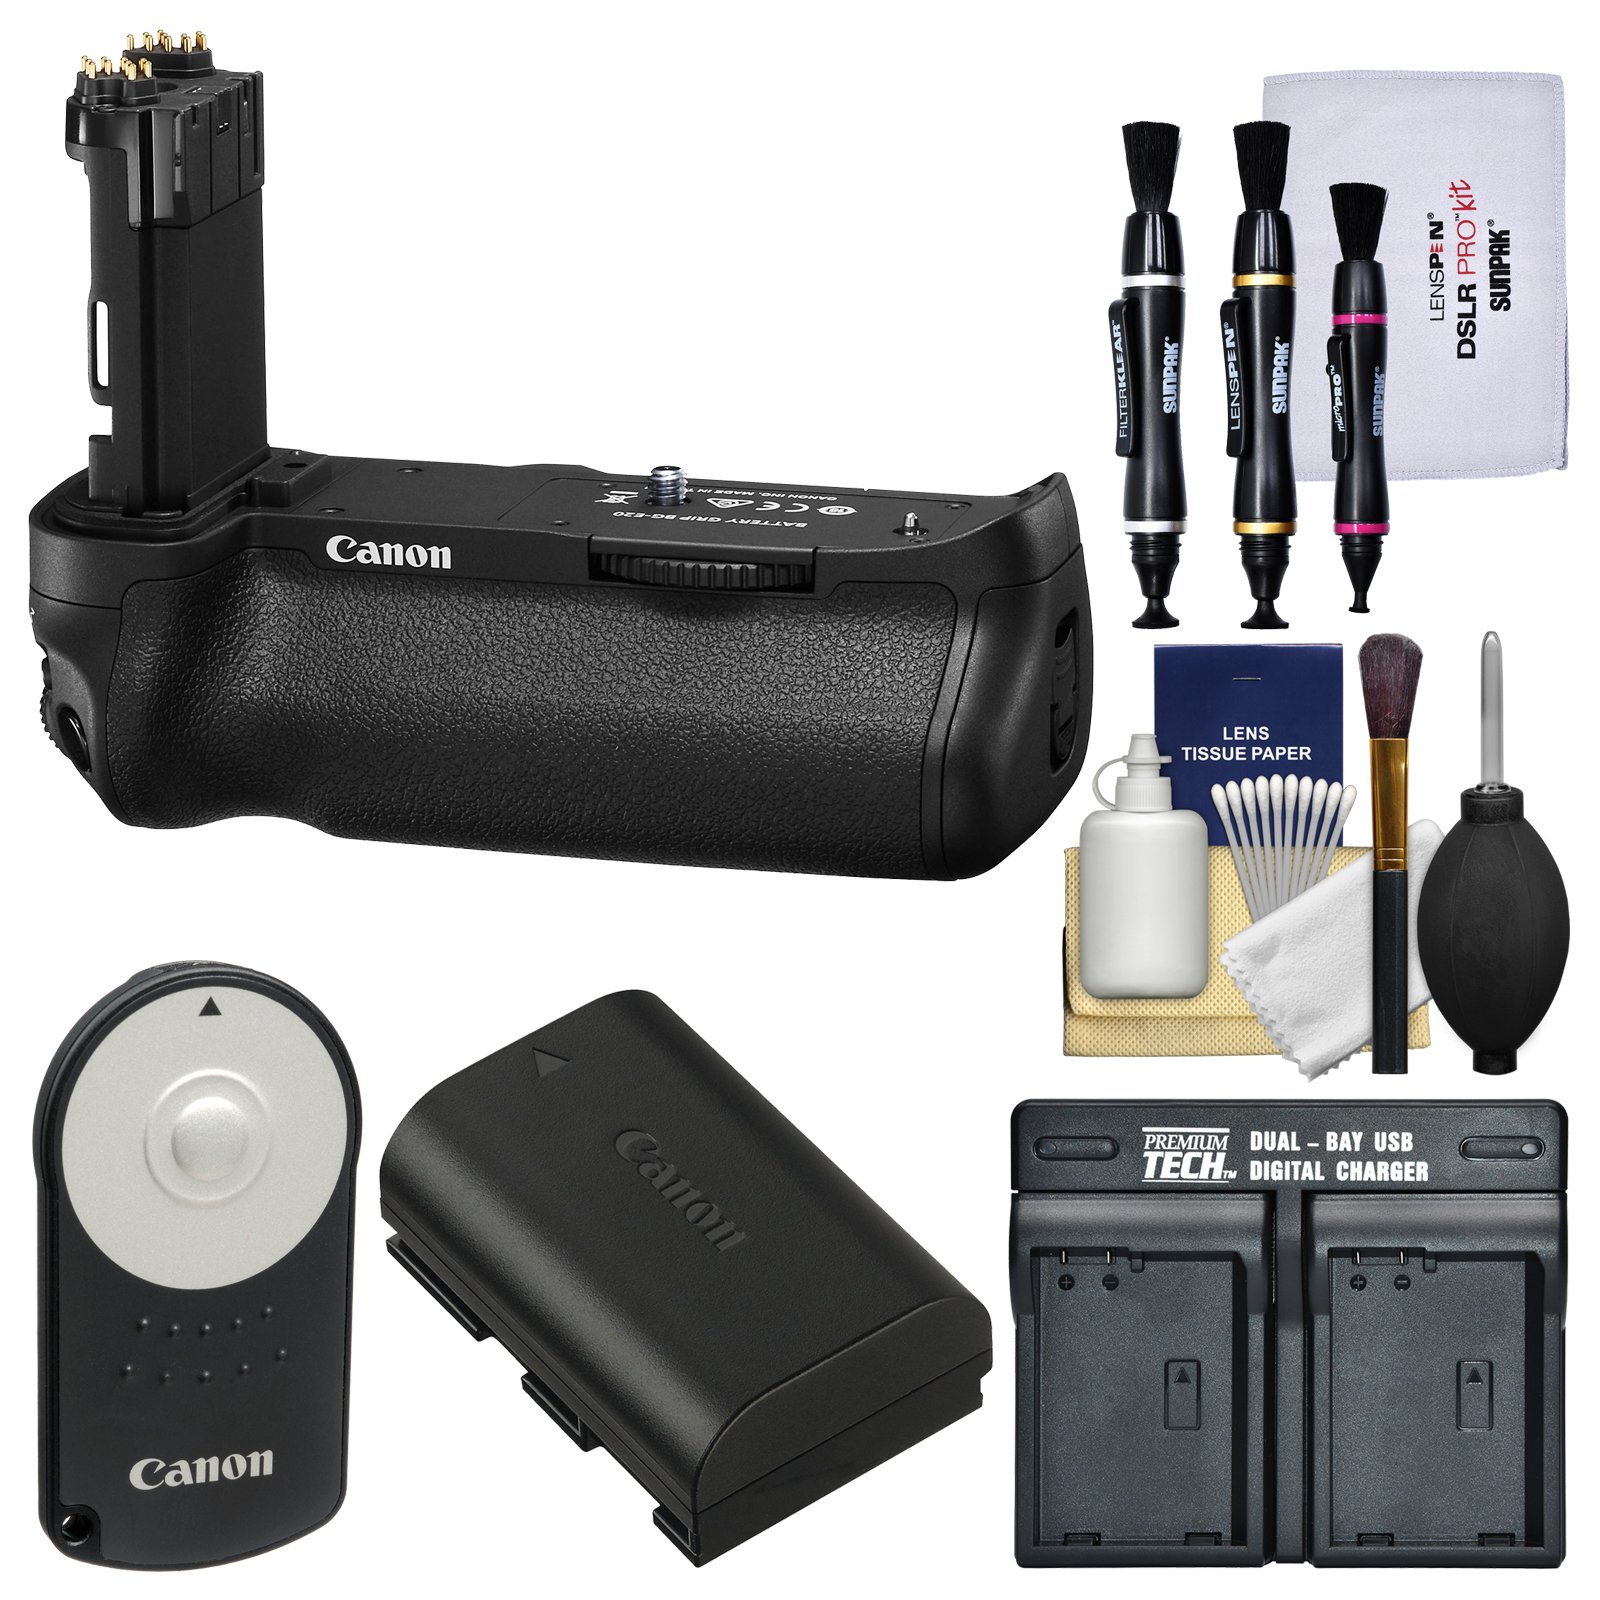 Canon BG-E20 Battery Grip for EOS 5D Mark IV Digital SLR Camera with LP-E6 Battery & Dual Charger + Remote Kit